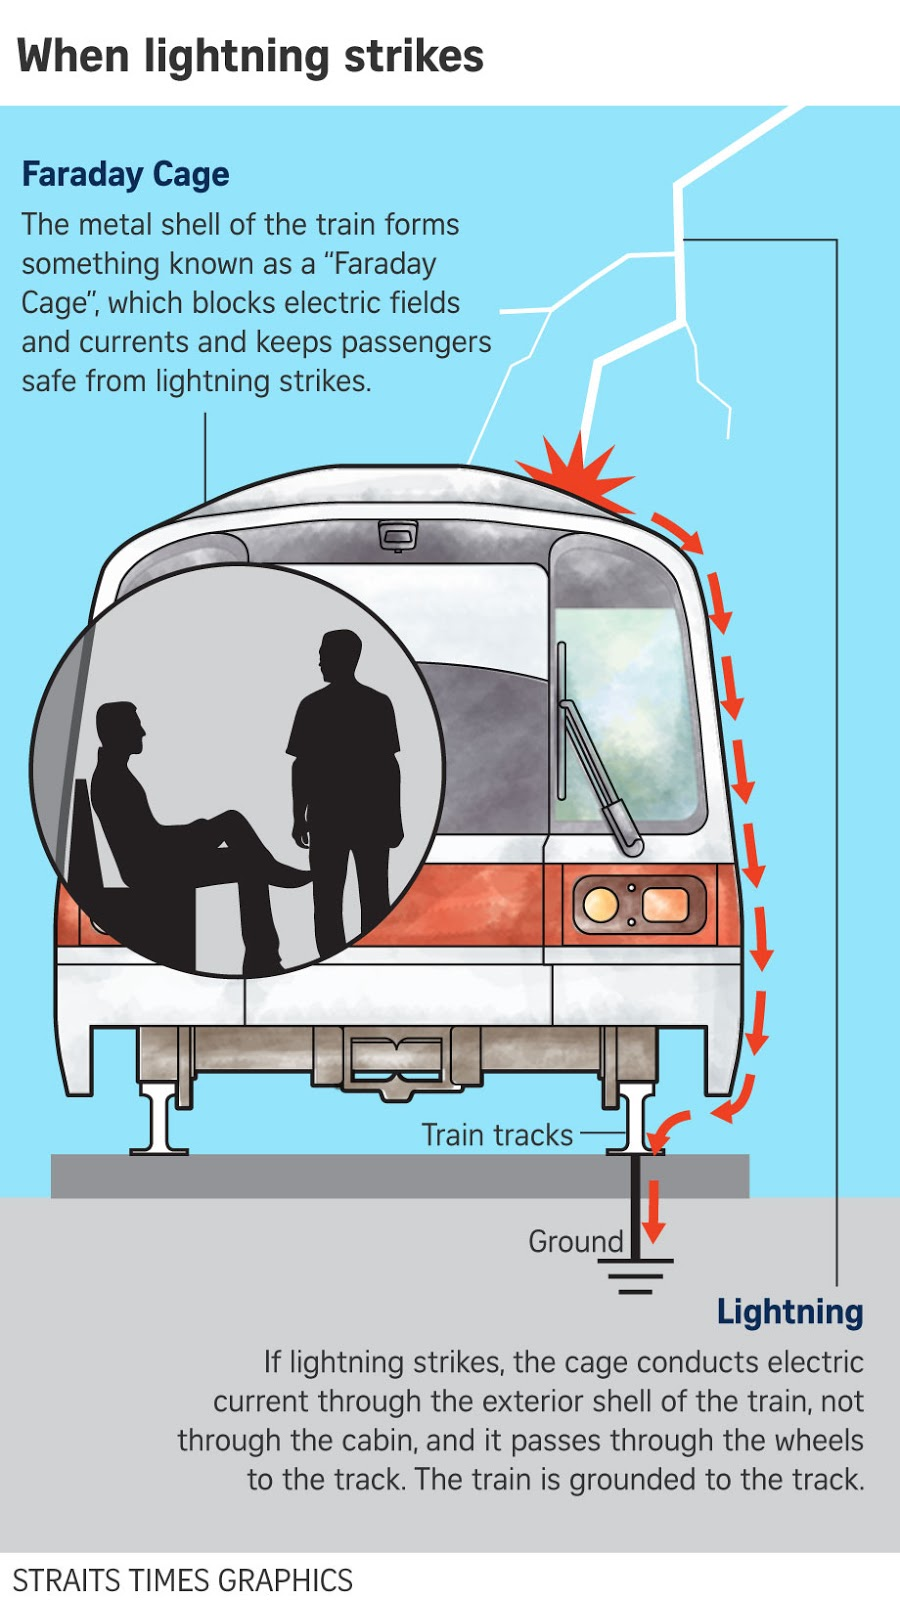 Each train is protected by a 'Faraday Cage', an enclosure formed by conductive material that blocks electric fields and electric currents such as lightning strikes.